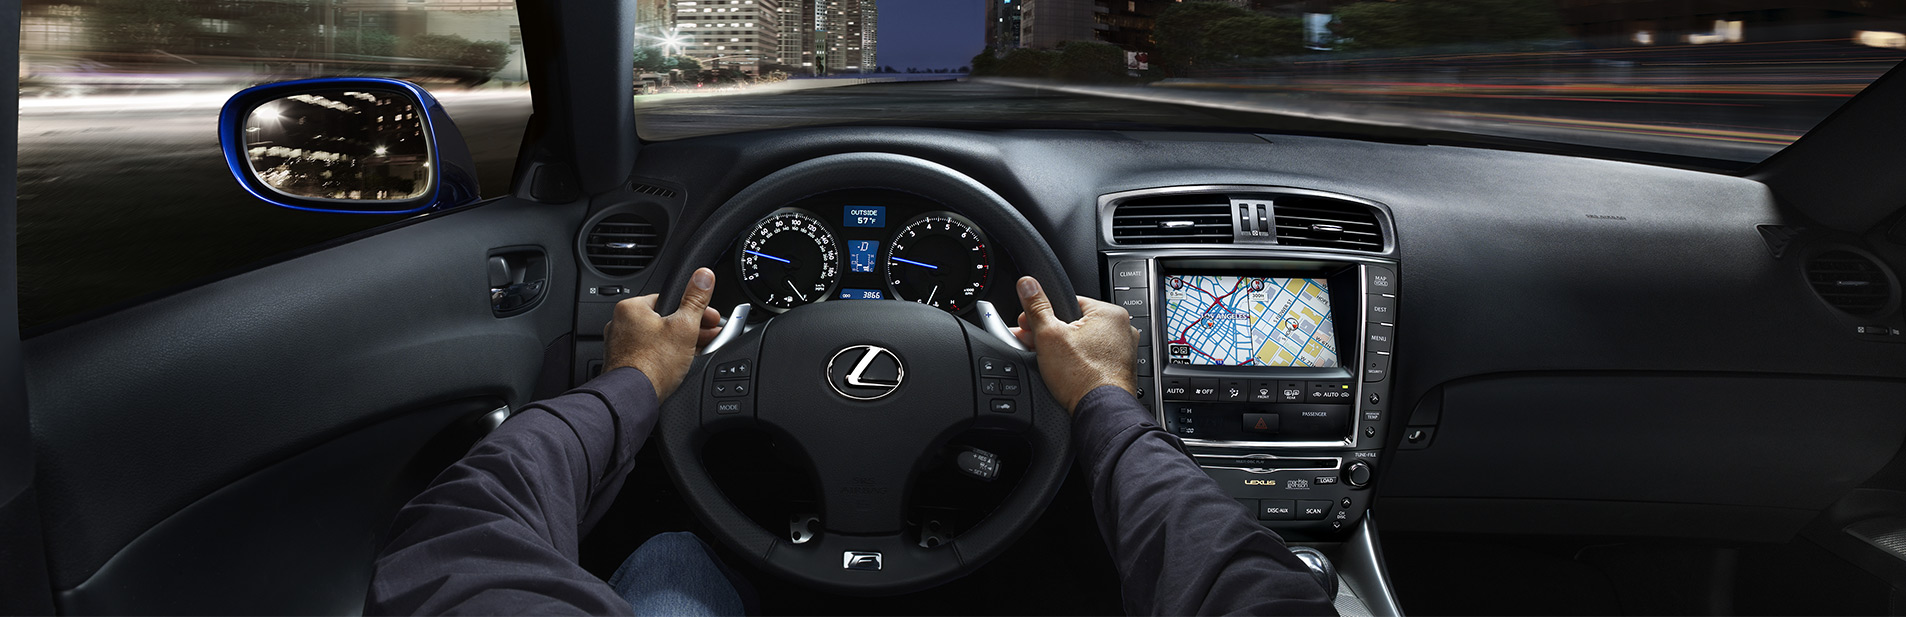 hands on the wheel of a lexus